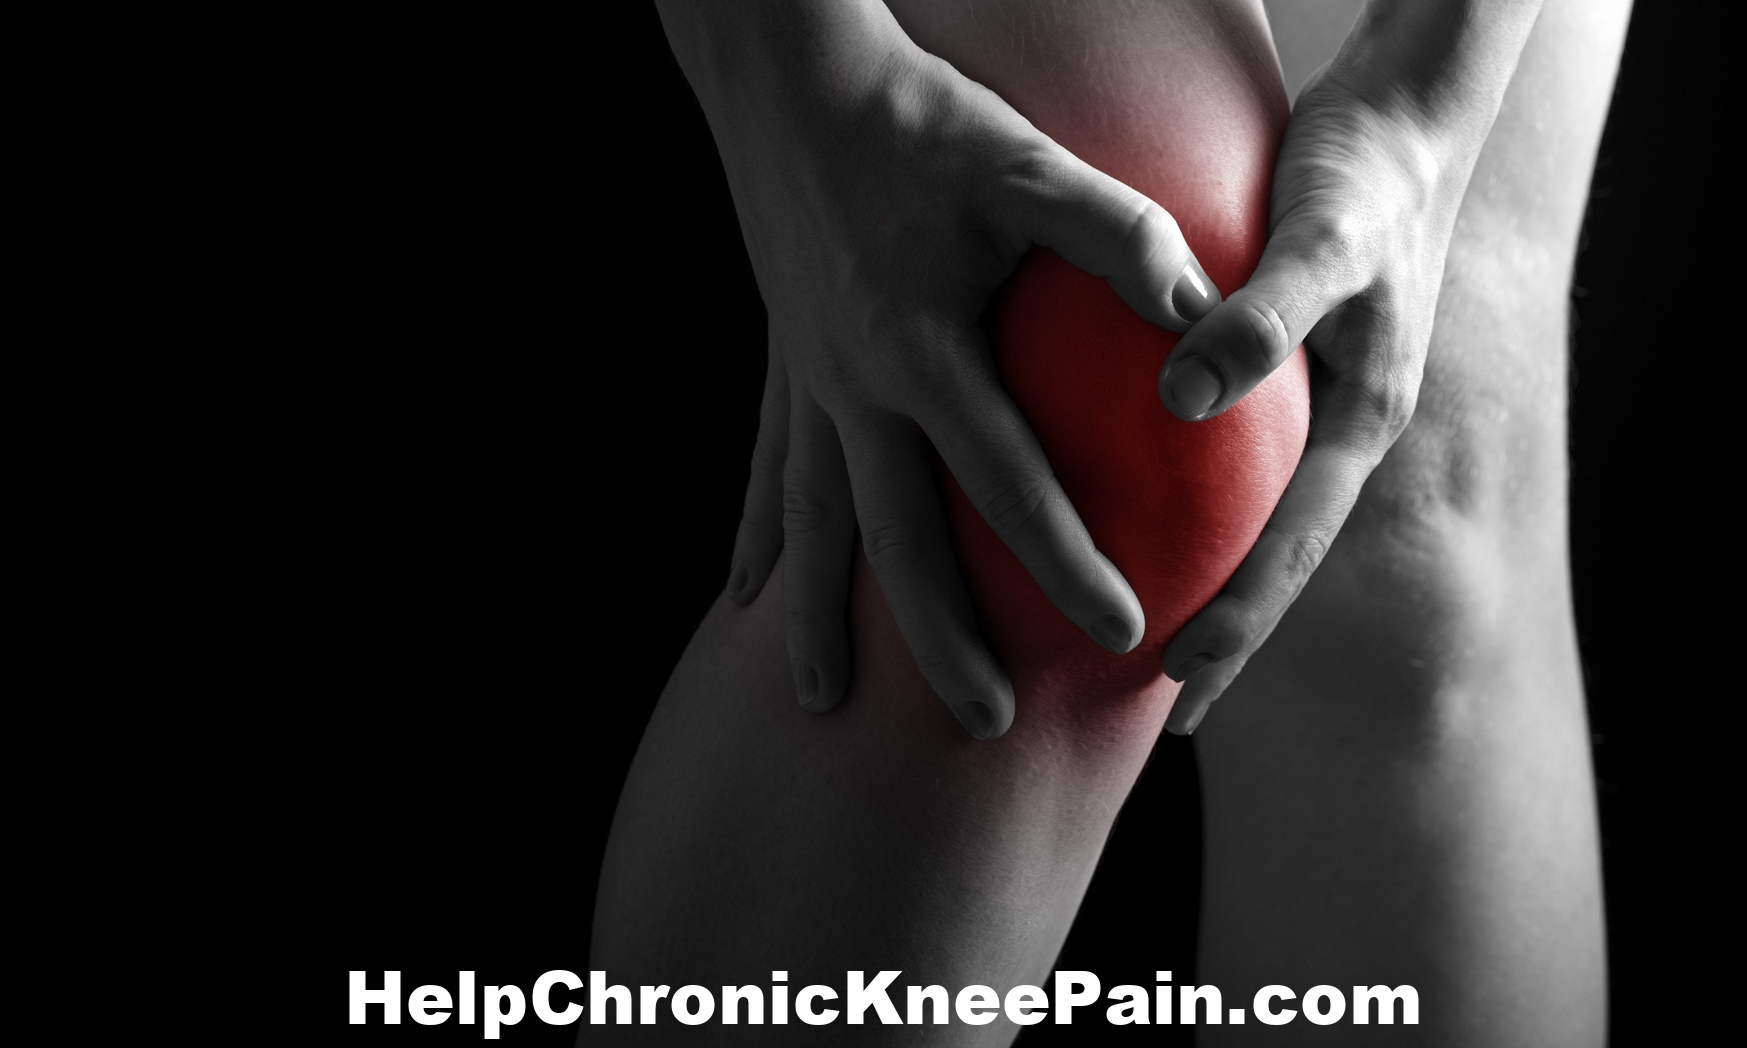 Can Chronic Knee Pain Be Helped Without Surgery, Shots or Drugs?